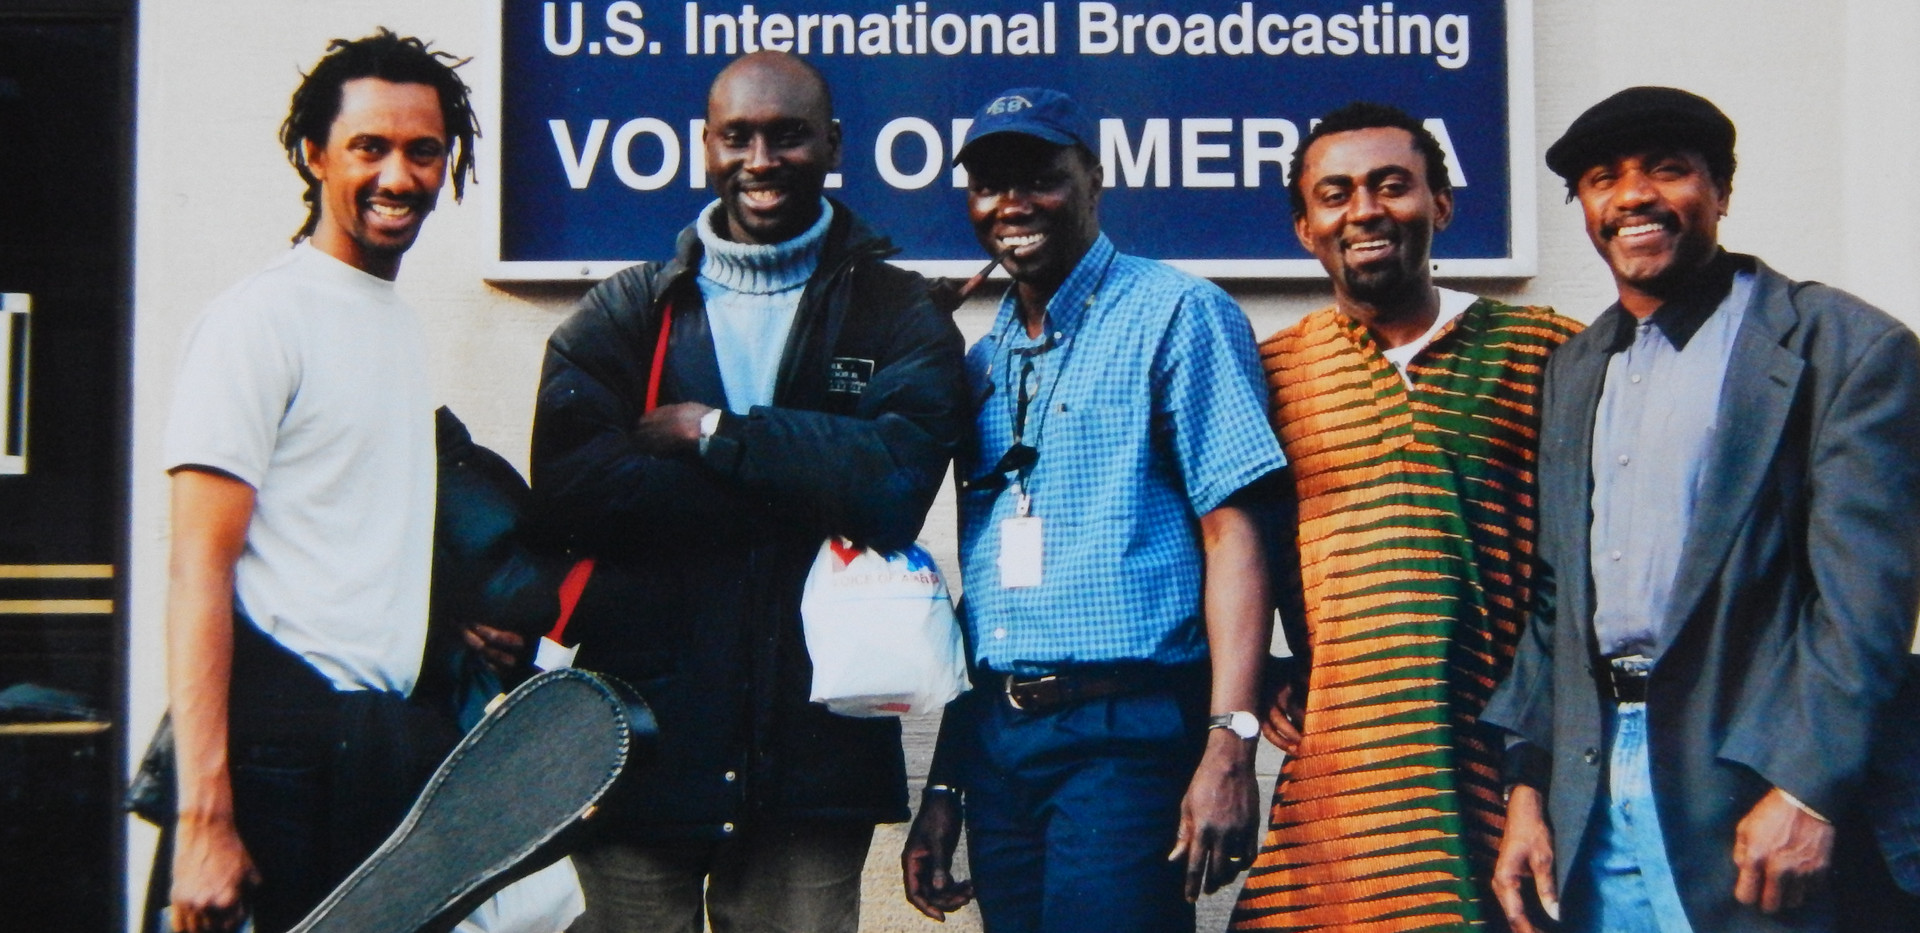 Guest of Voice of America in Washington DC with the Senegalese duo Toure Toure and the hosts of the African news Eric Agnero